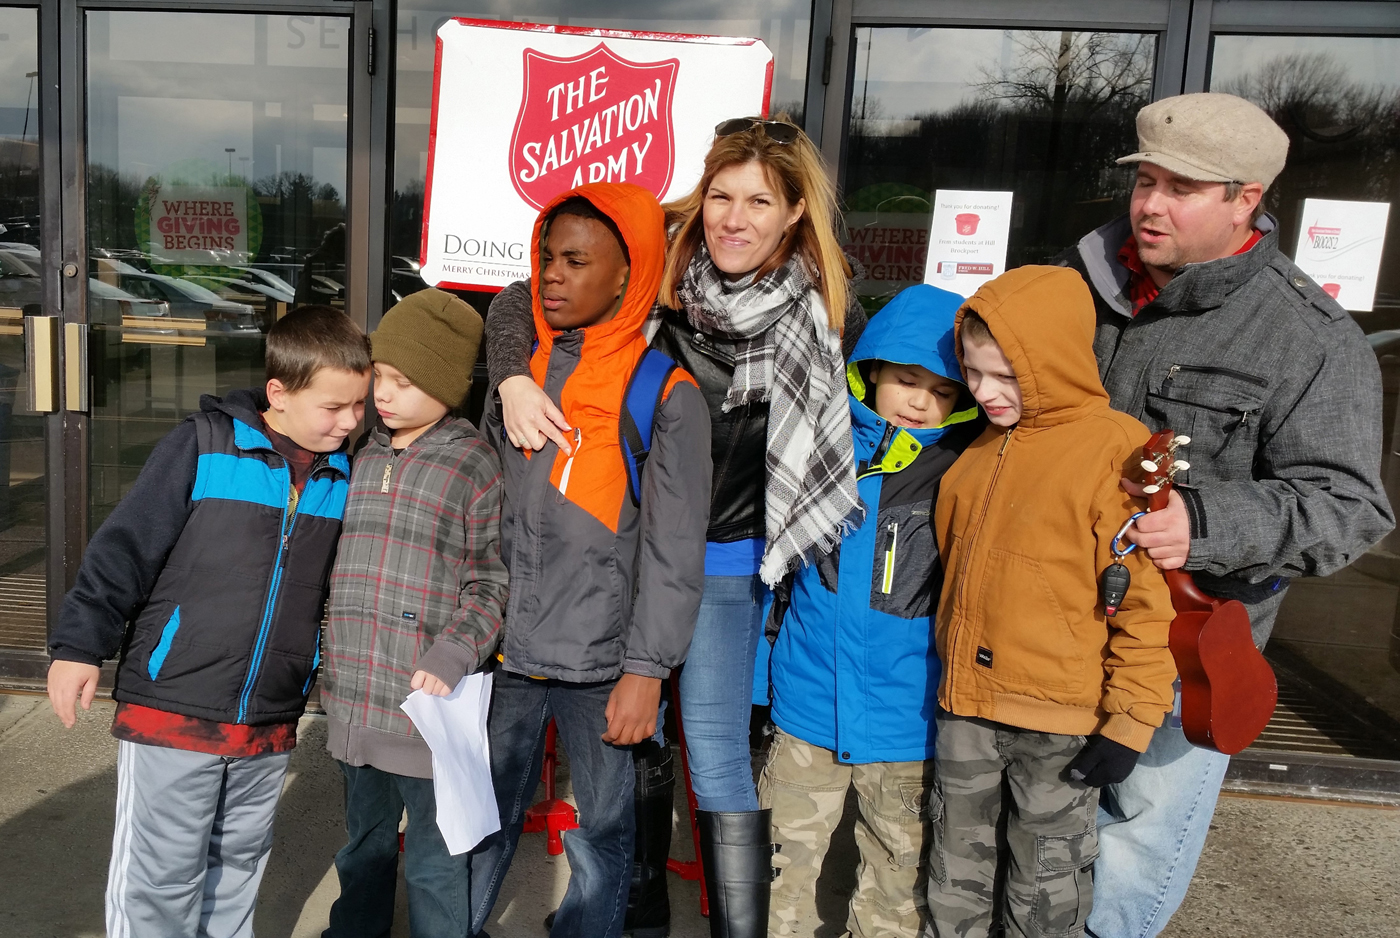 bport-Bell-Ringing Salvation Army Job Application Form on